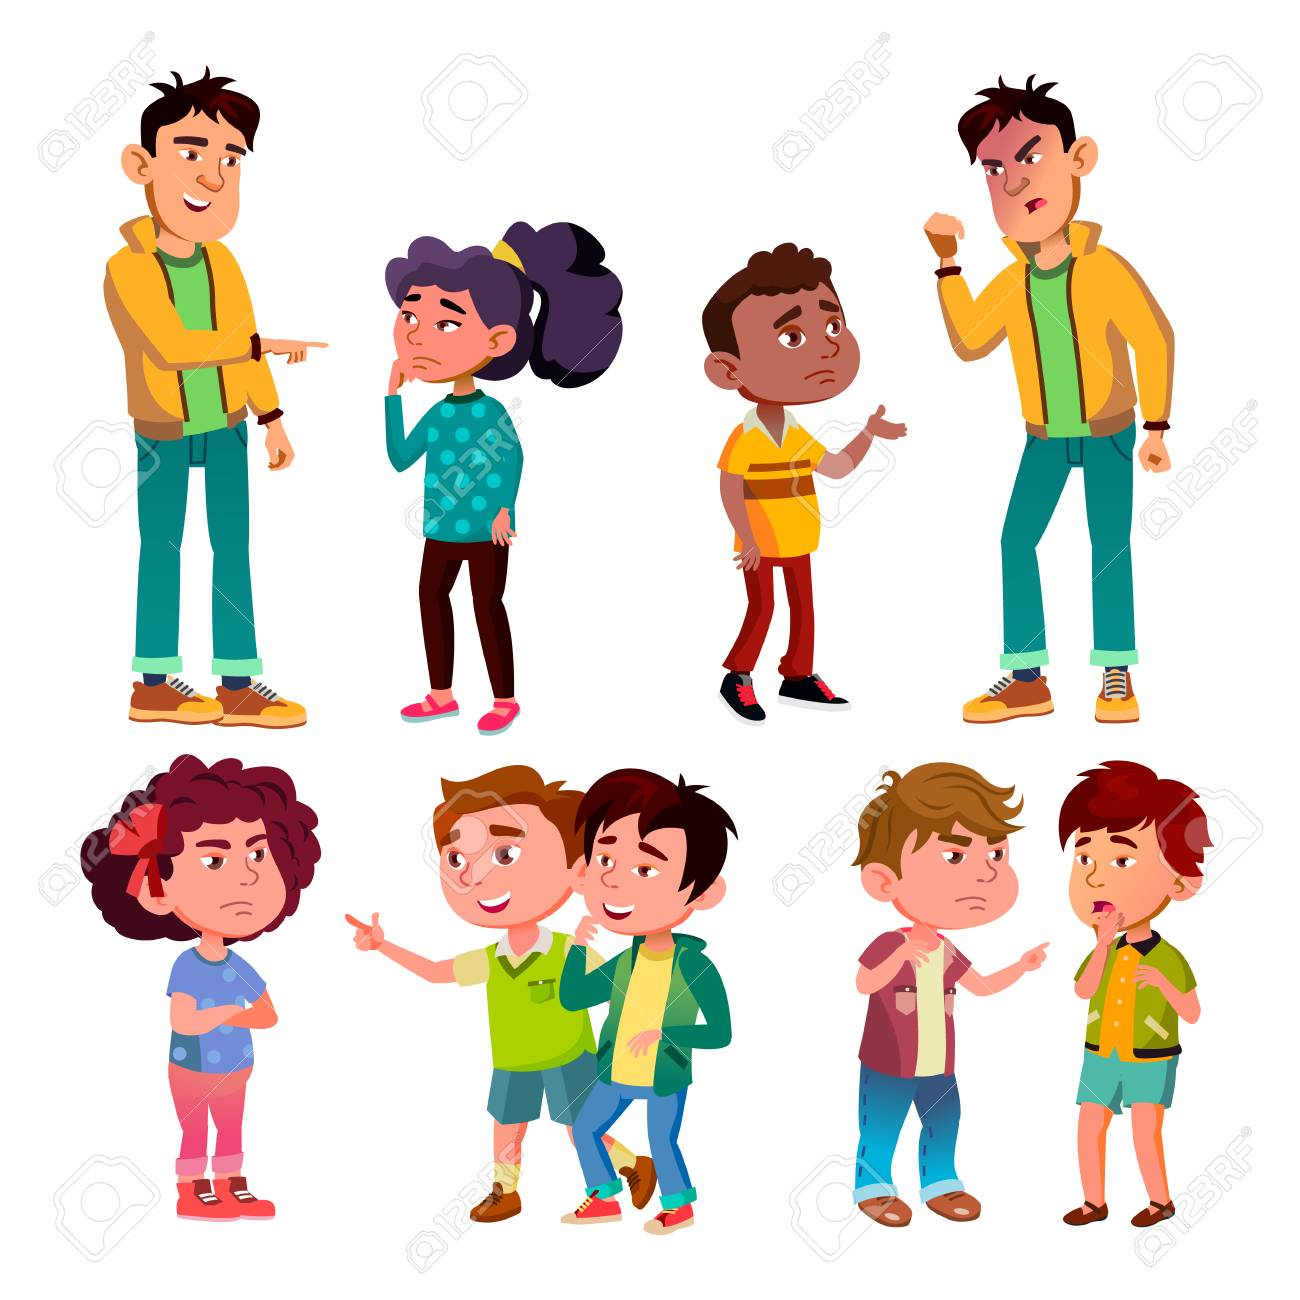 Sad And Angry Victim Character Boy And Girl Vector. Teenager Boy Laughing And Swear On Victim Kids, Children Trolling Abusive Classmate. Social Bullying Concept Flat Cartoon Illustration - 126553650